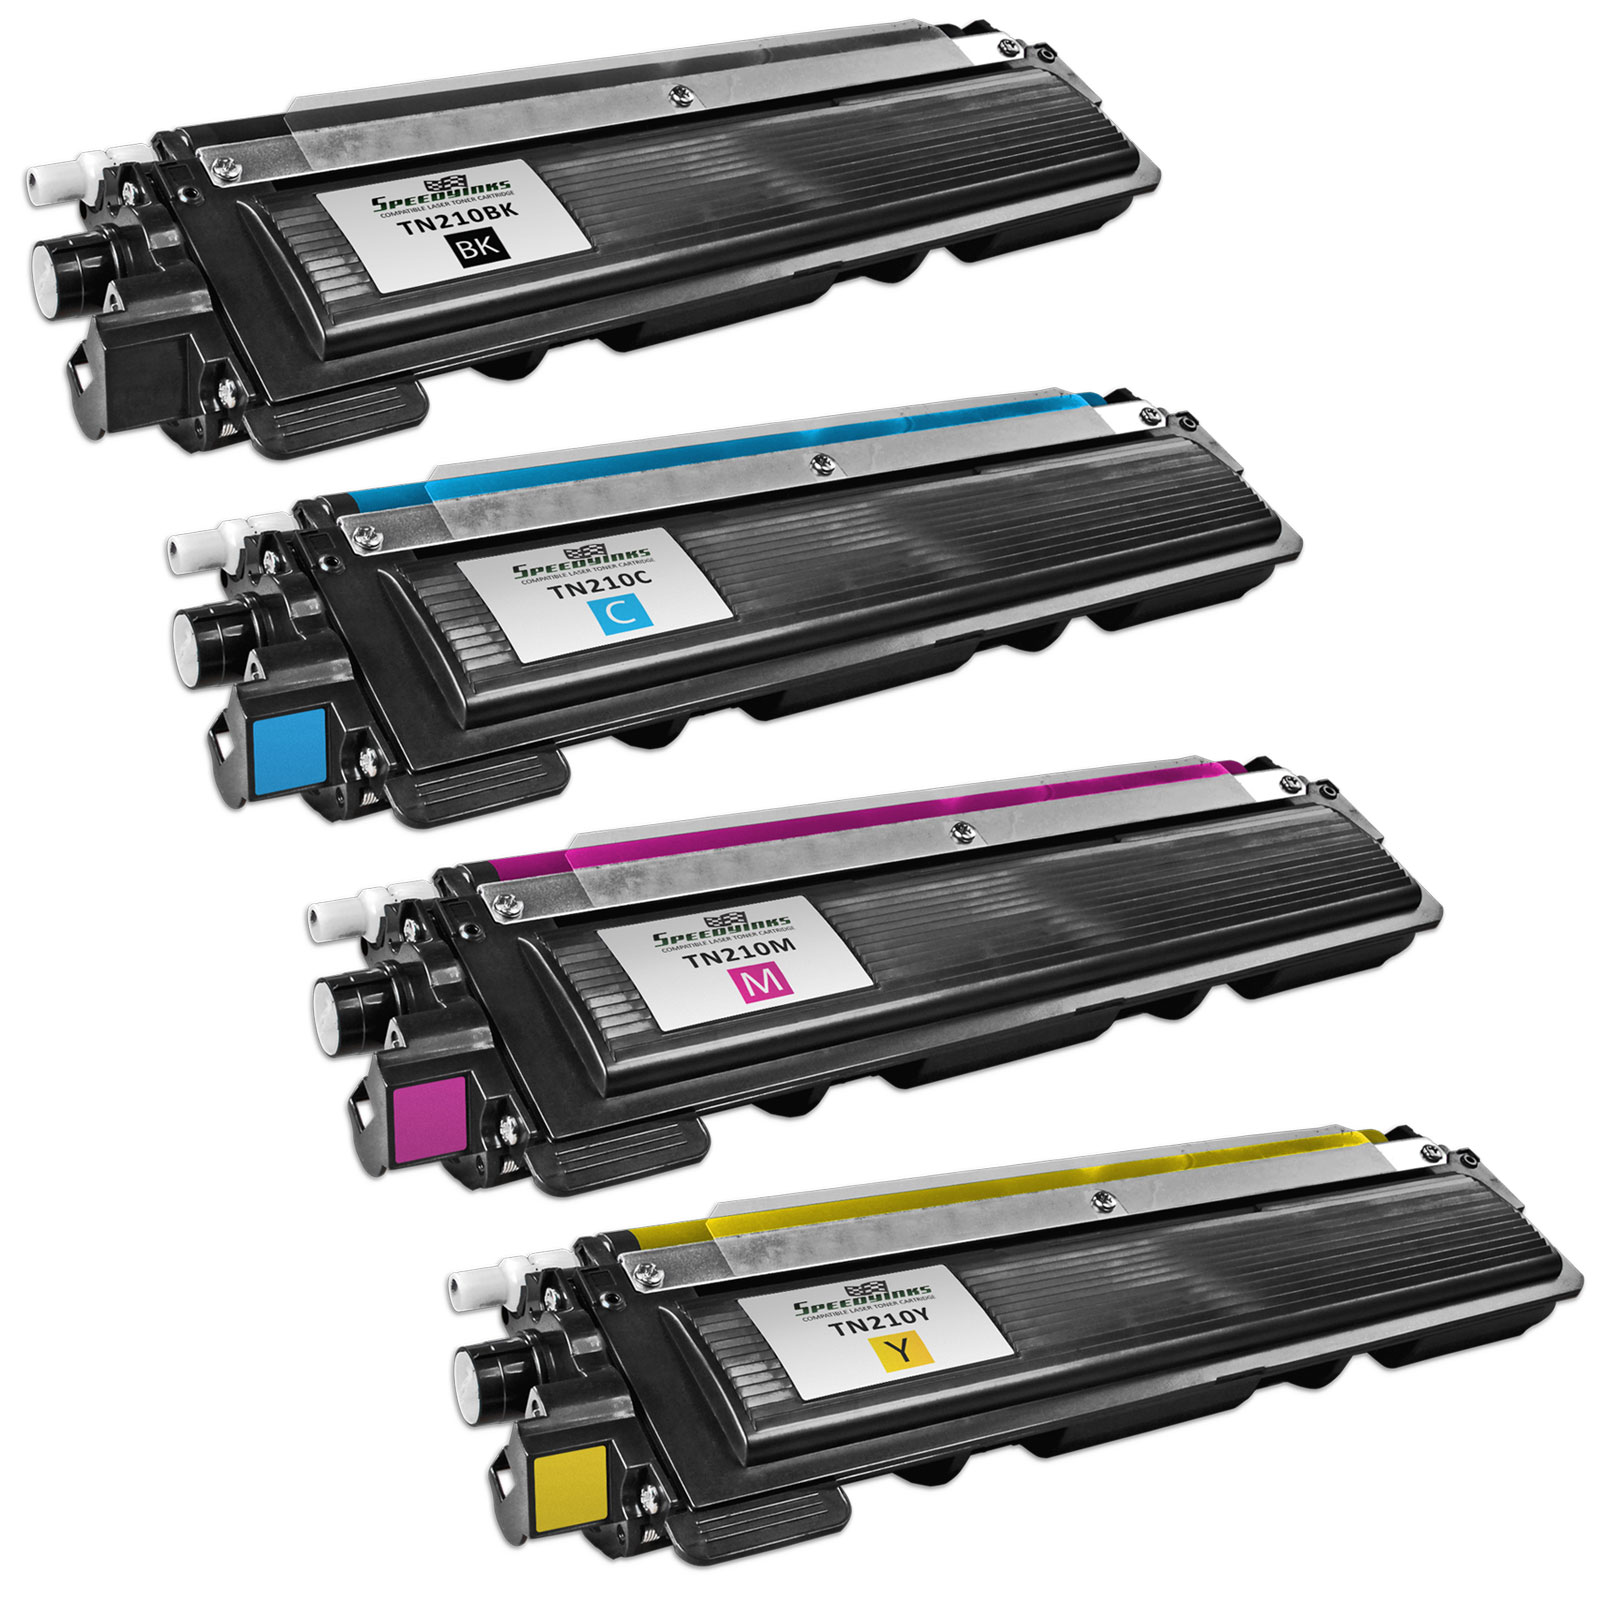 Speedy Inks - Brother Compatible TN-210 Set of 4 Laser Toner Cartridges: 1 each of Black TN210BK, Cyan TN210C, Magenta